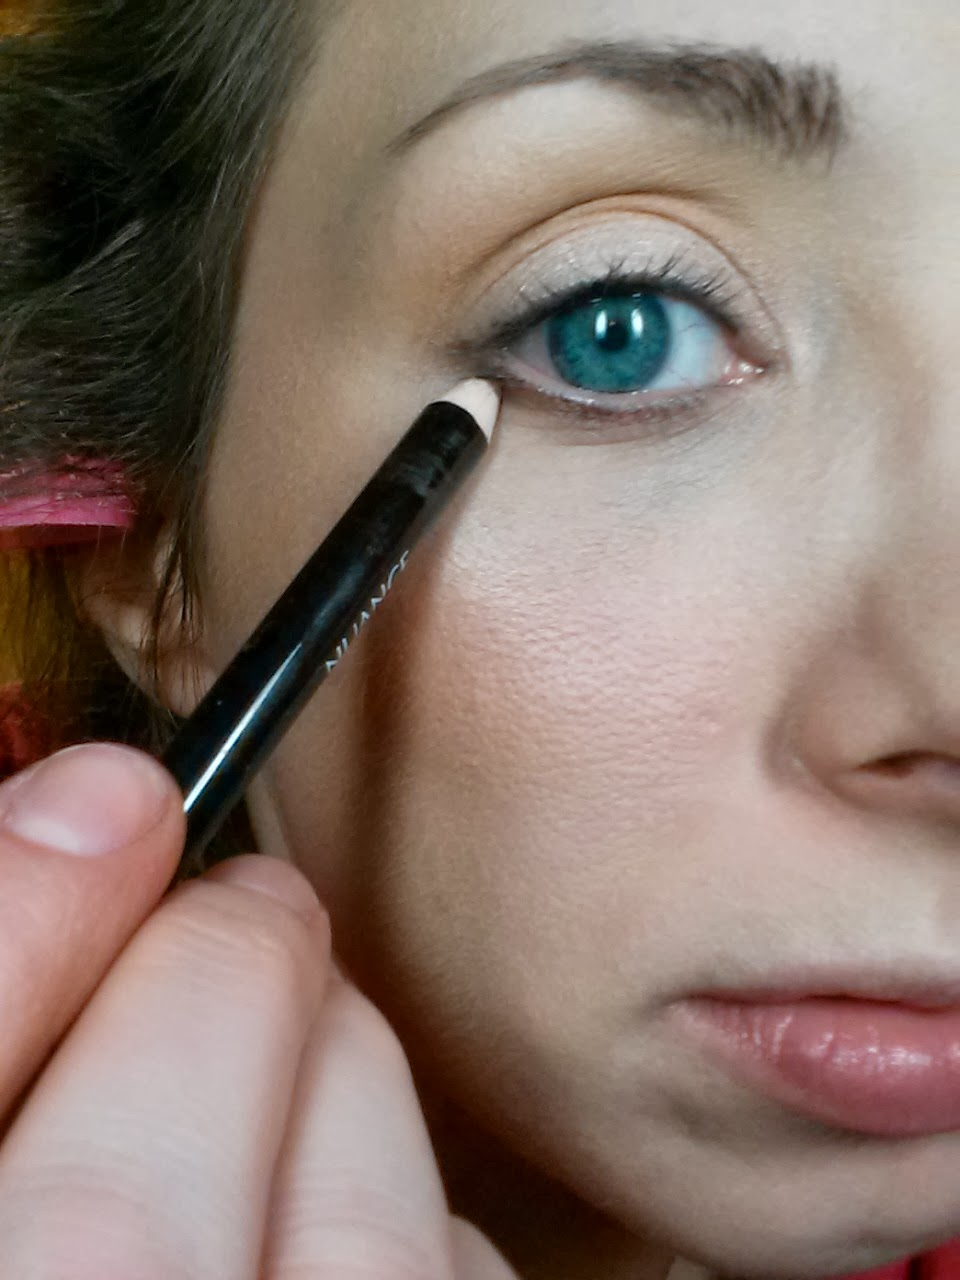 To Set It, I Applied A Shimmery Brown Eyeshadow By Wet N Wild (comfort Zone  Palette) Over Top Using A Pencil Brush